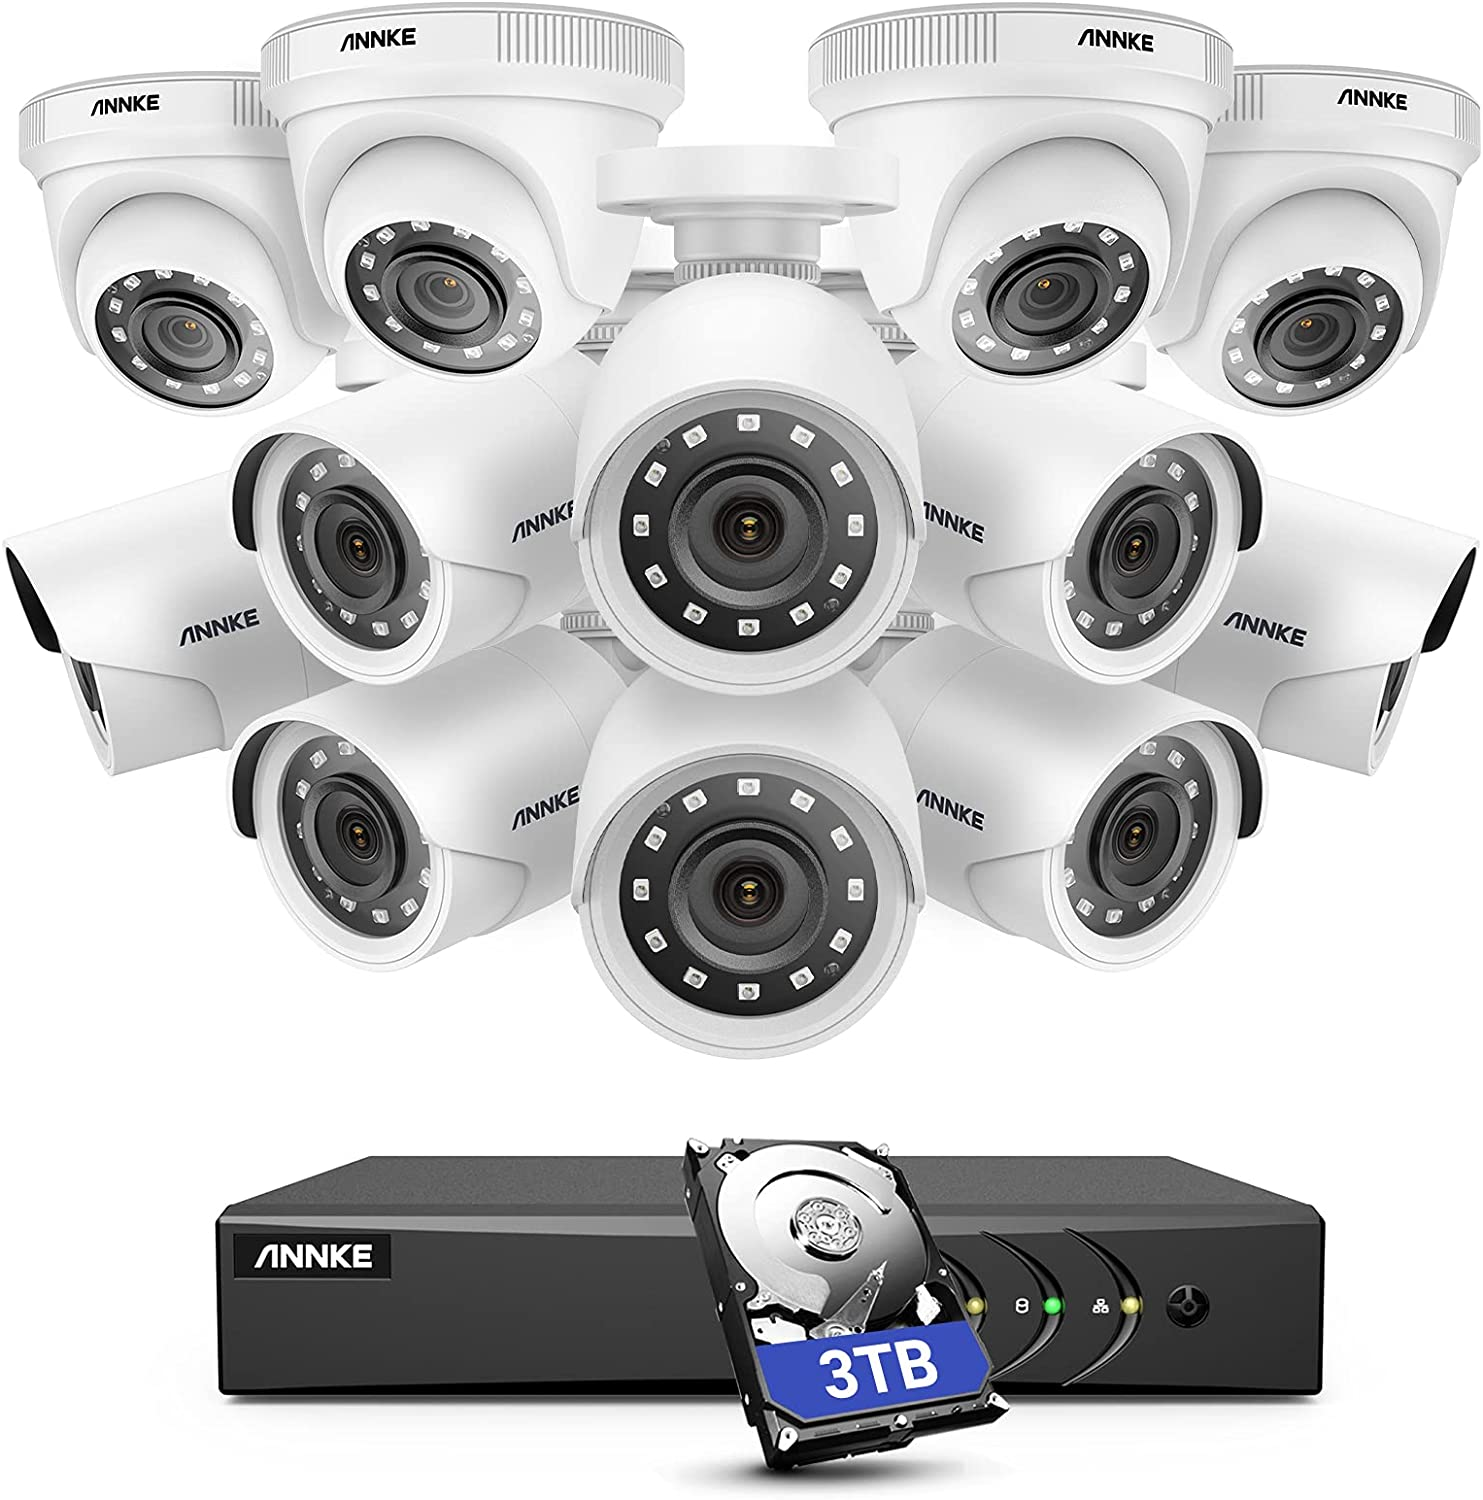 ANNKE 5MP Lite Beauty products 16 Channel Security H.265+ Chan Camera New Orleans Mall System